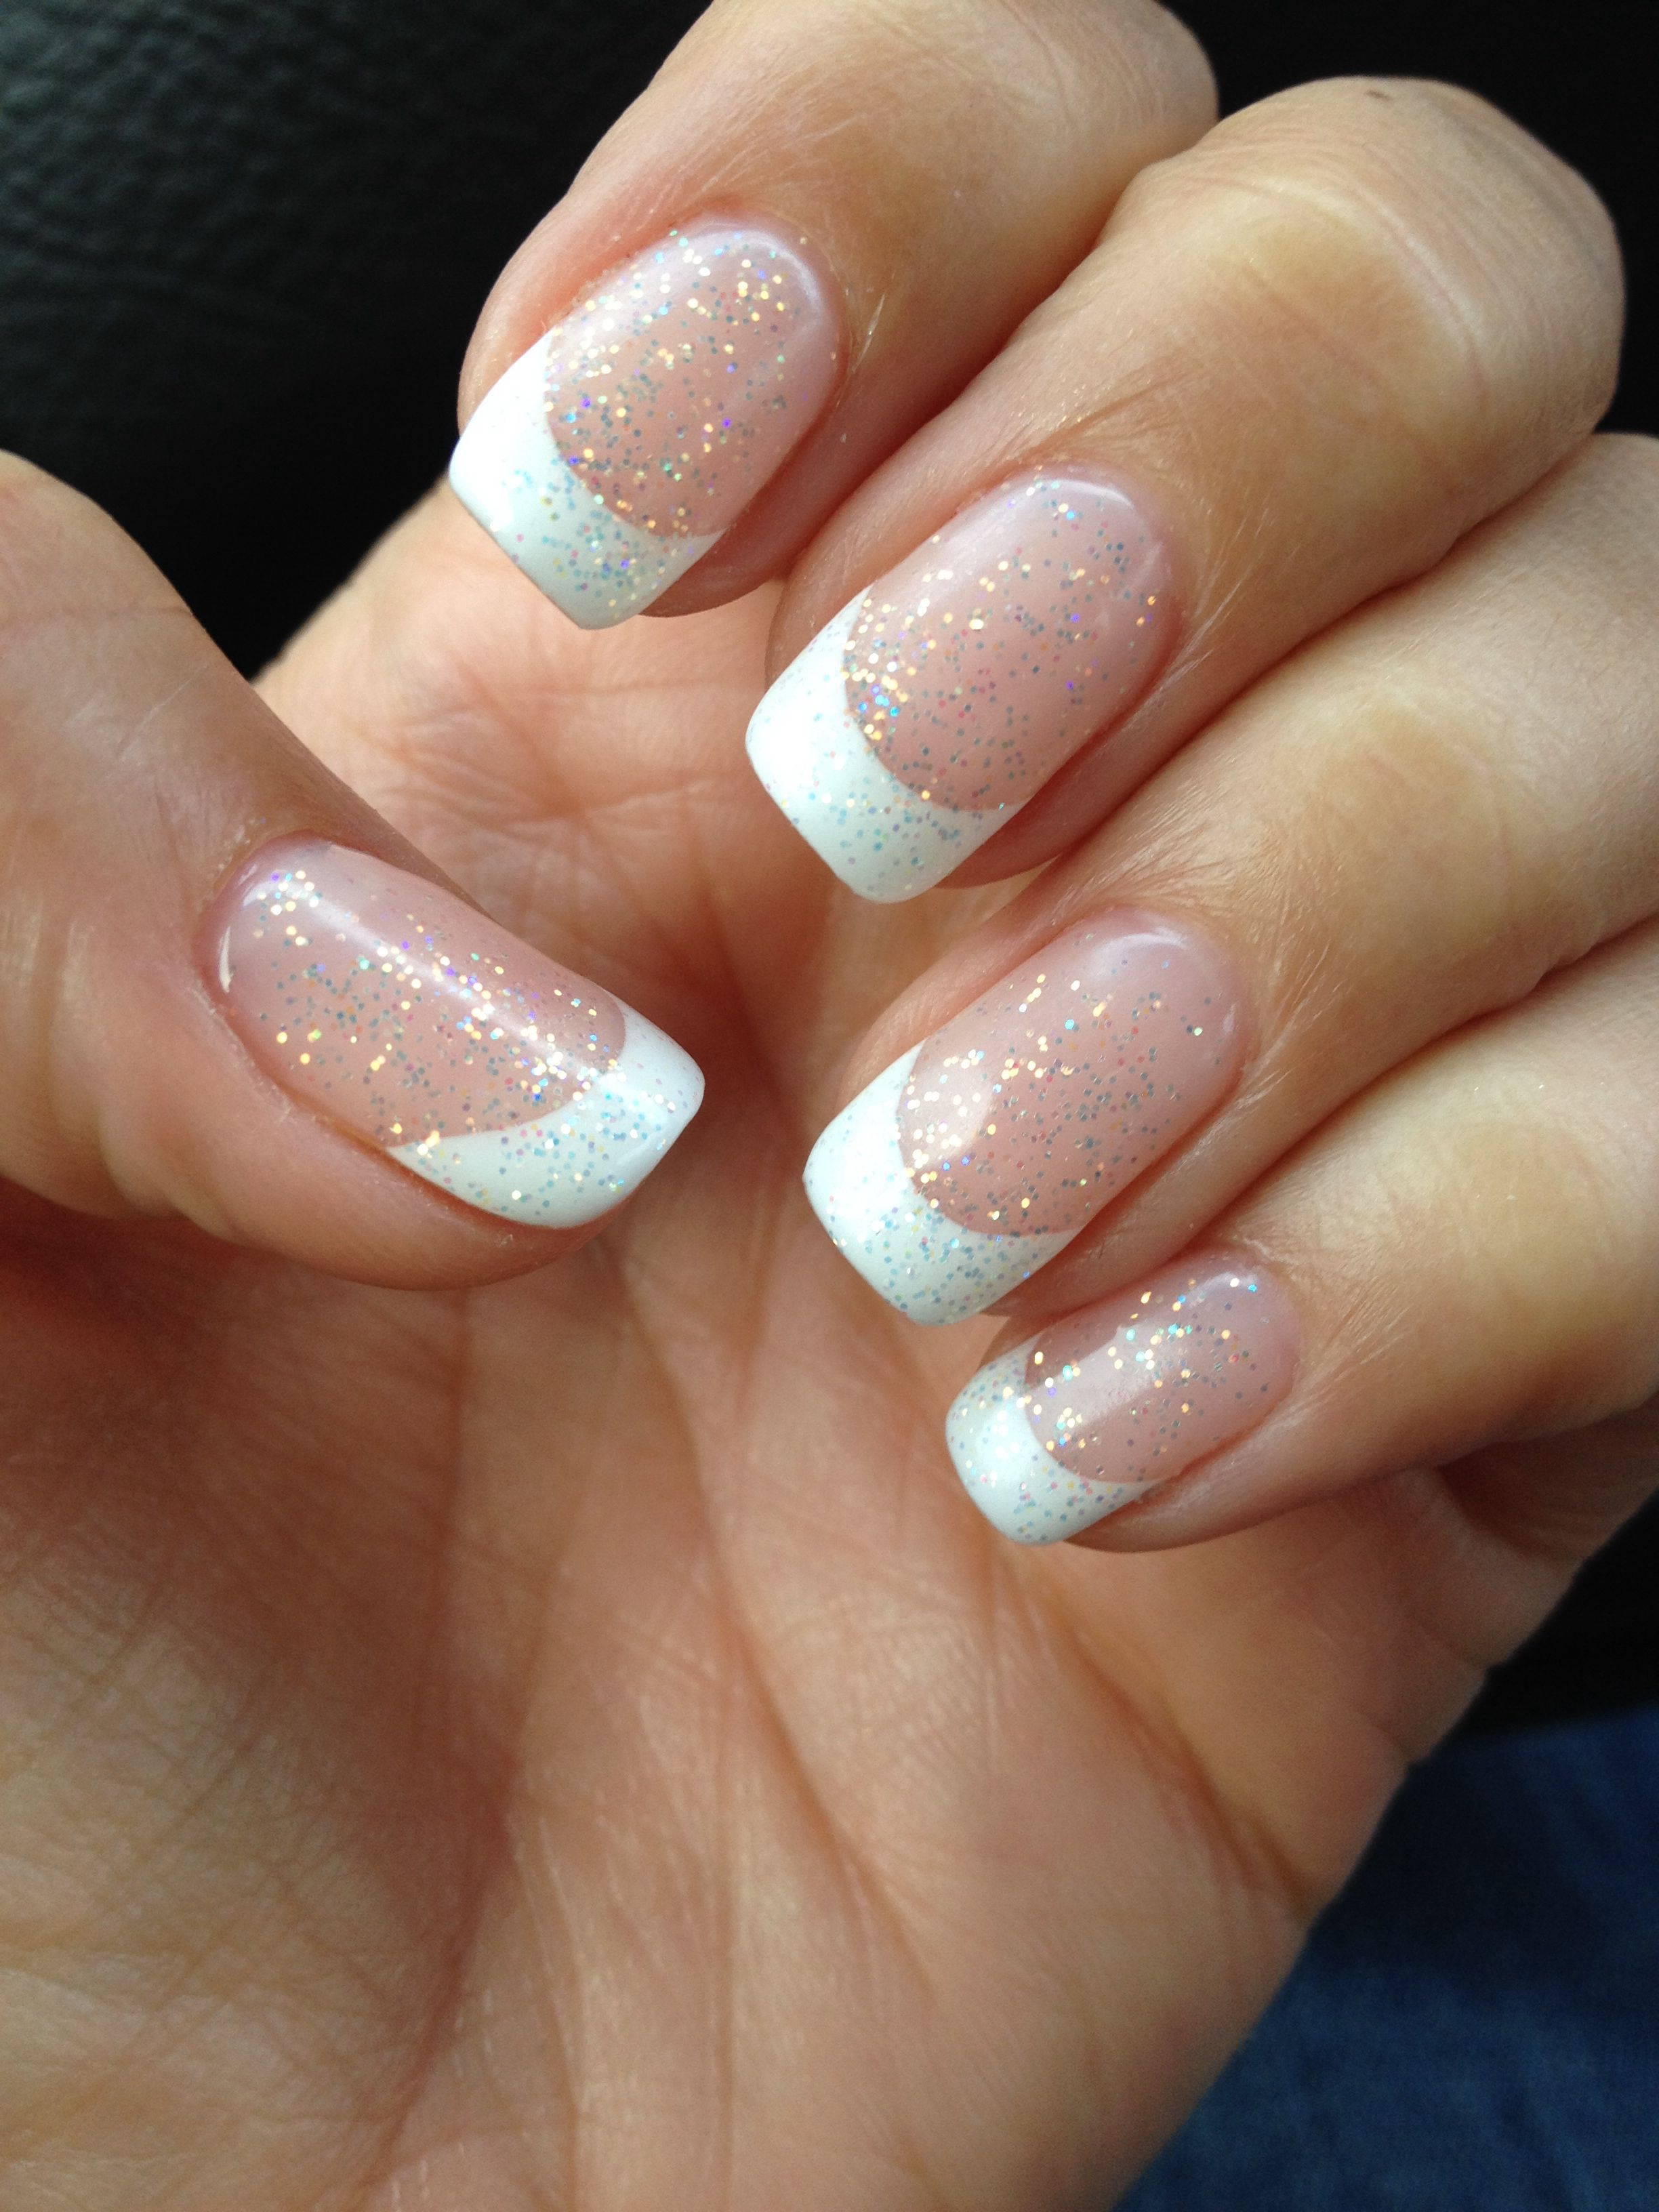 Bling! (With images) | Anniversary nails, Pretty nails ...